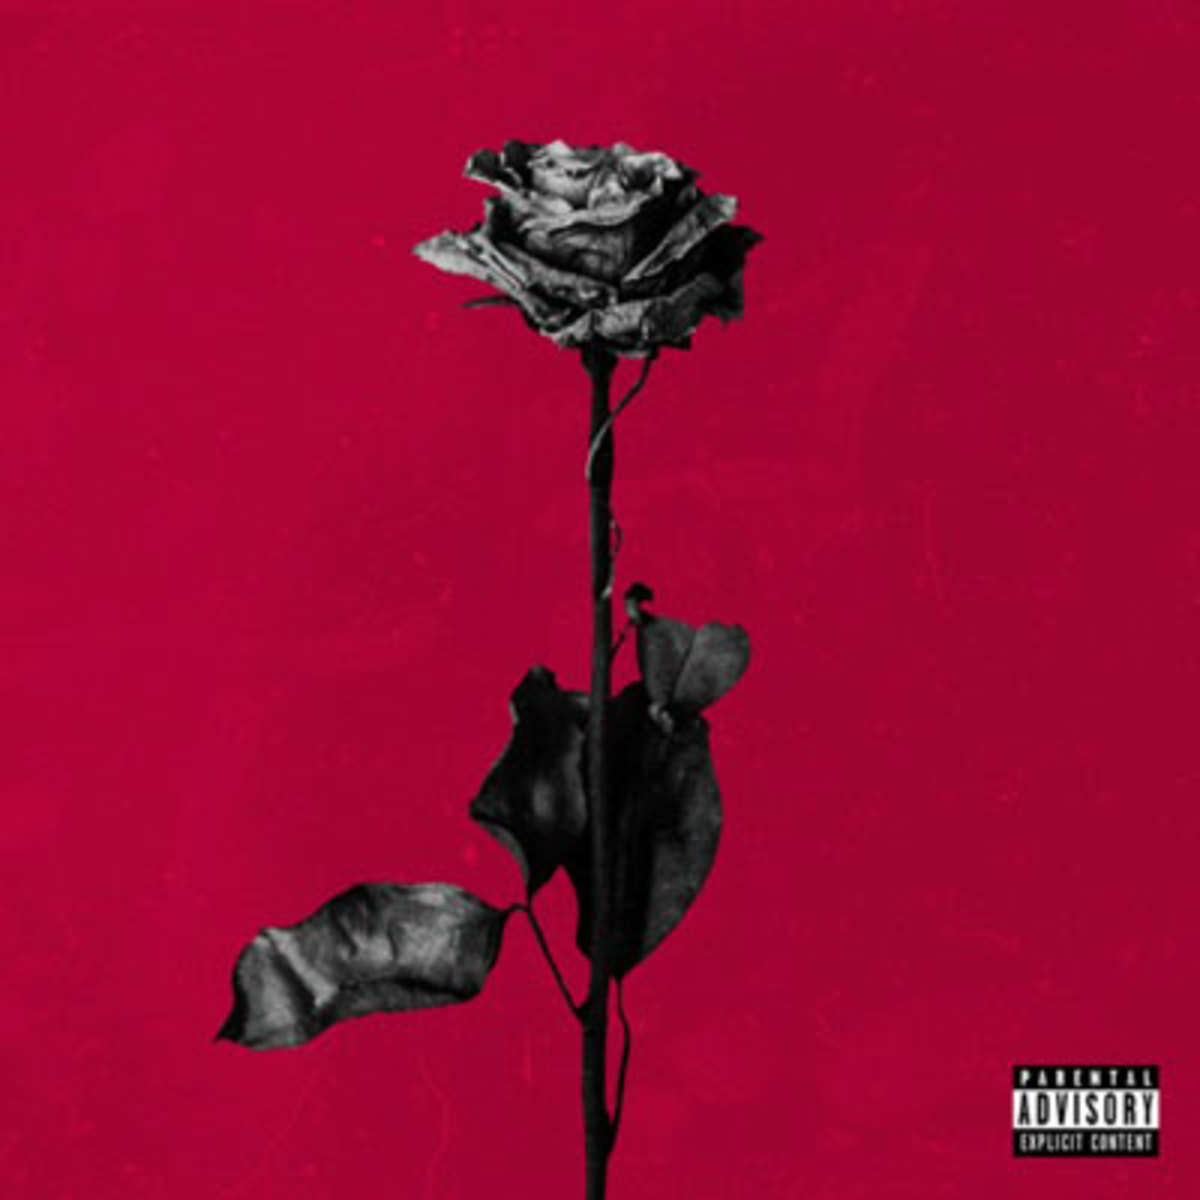 blackbear-deadroses.jpg